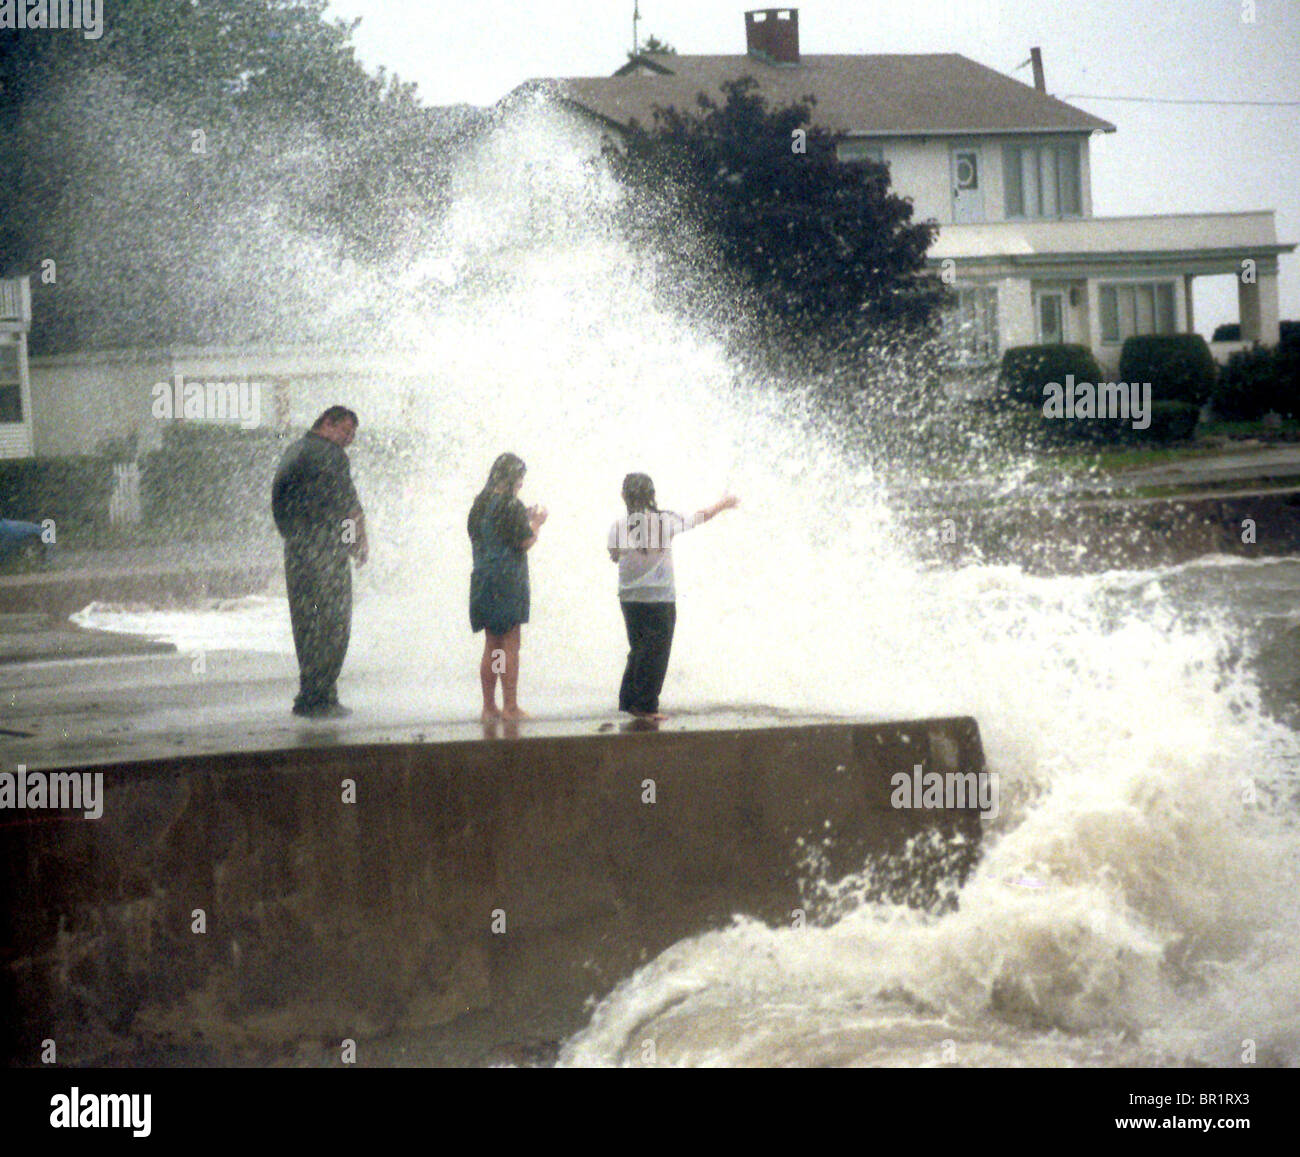 A local family stand on the seawall at Woodmont Point during high tide in Milford Conn. Hurricane Floyd was reduced - Stock Image